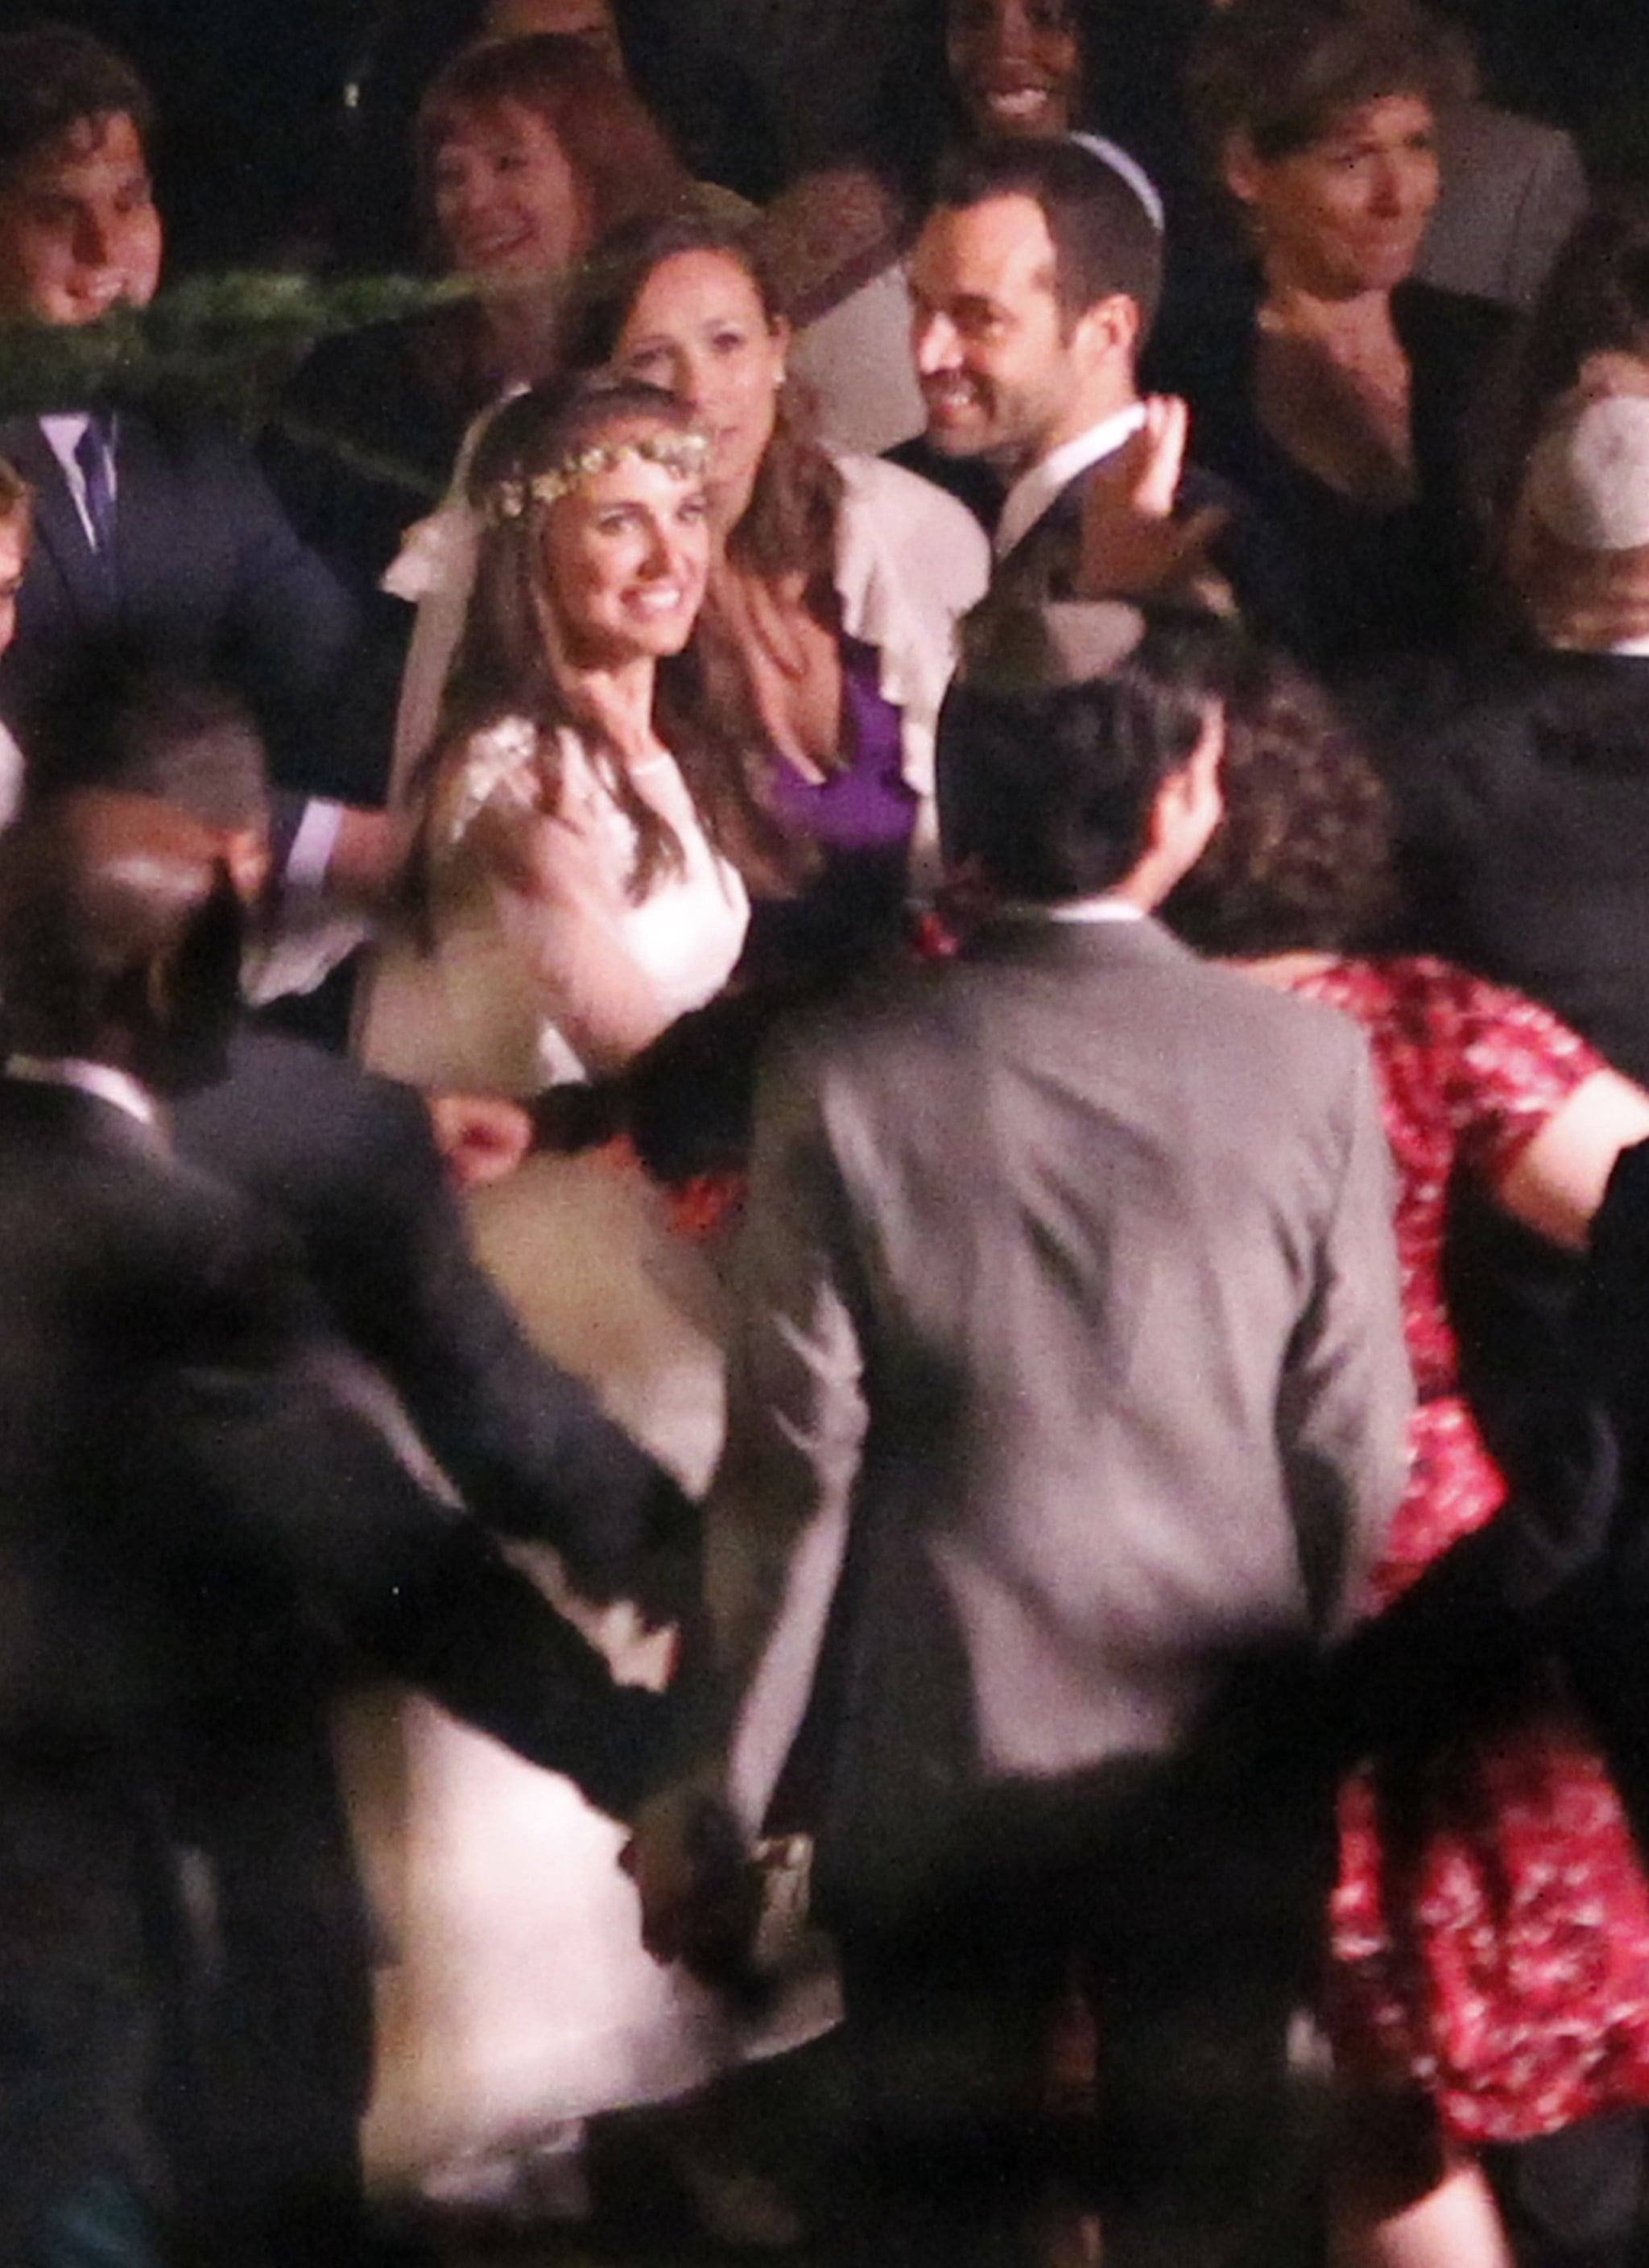 Natalie Portman and Benjamin Millepied held their August 2012 nuptials in Big Sur, CA, during the evening.